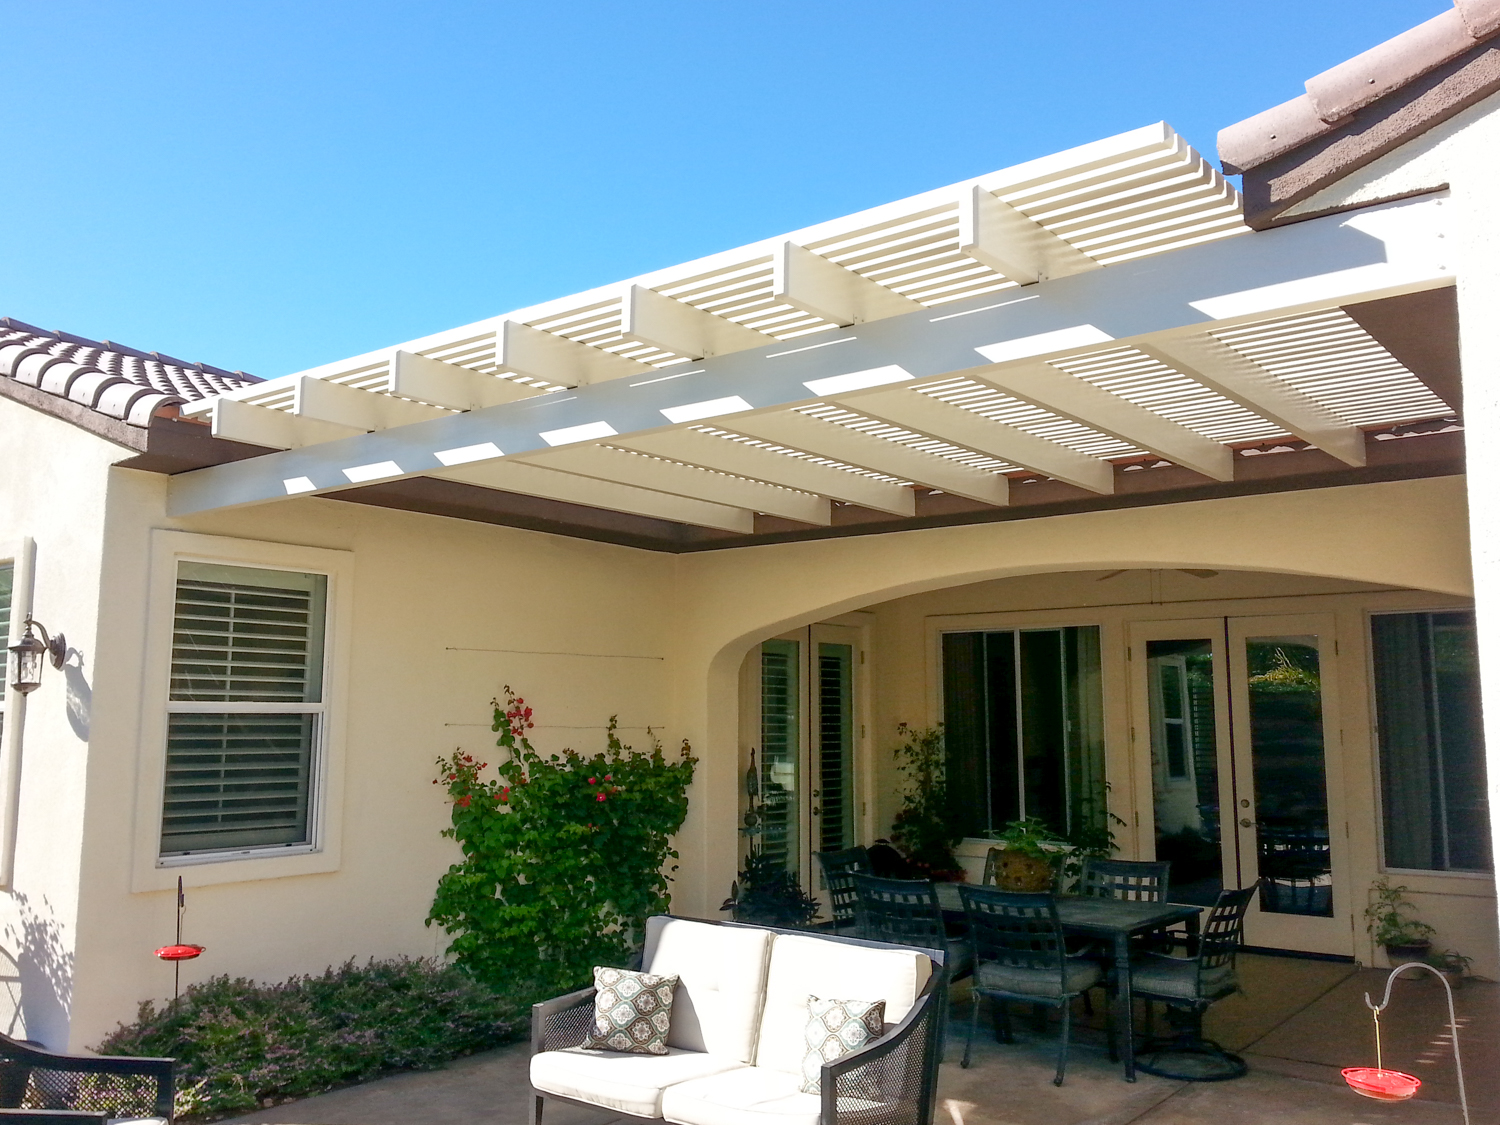 Awning for Backyard Patio Area, La Quinta 92253